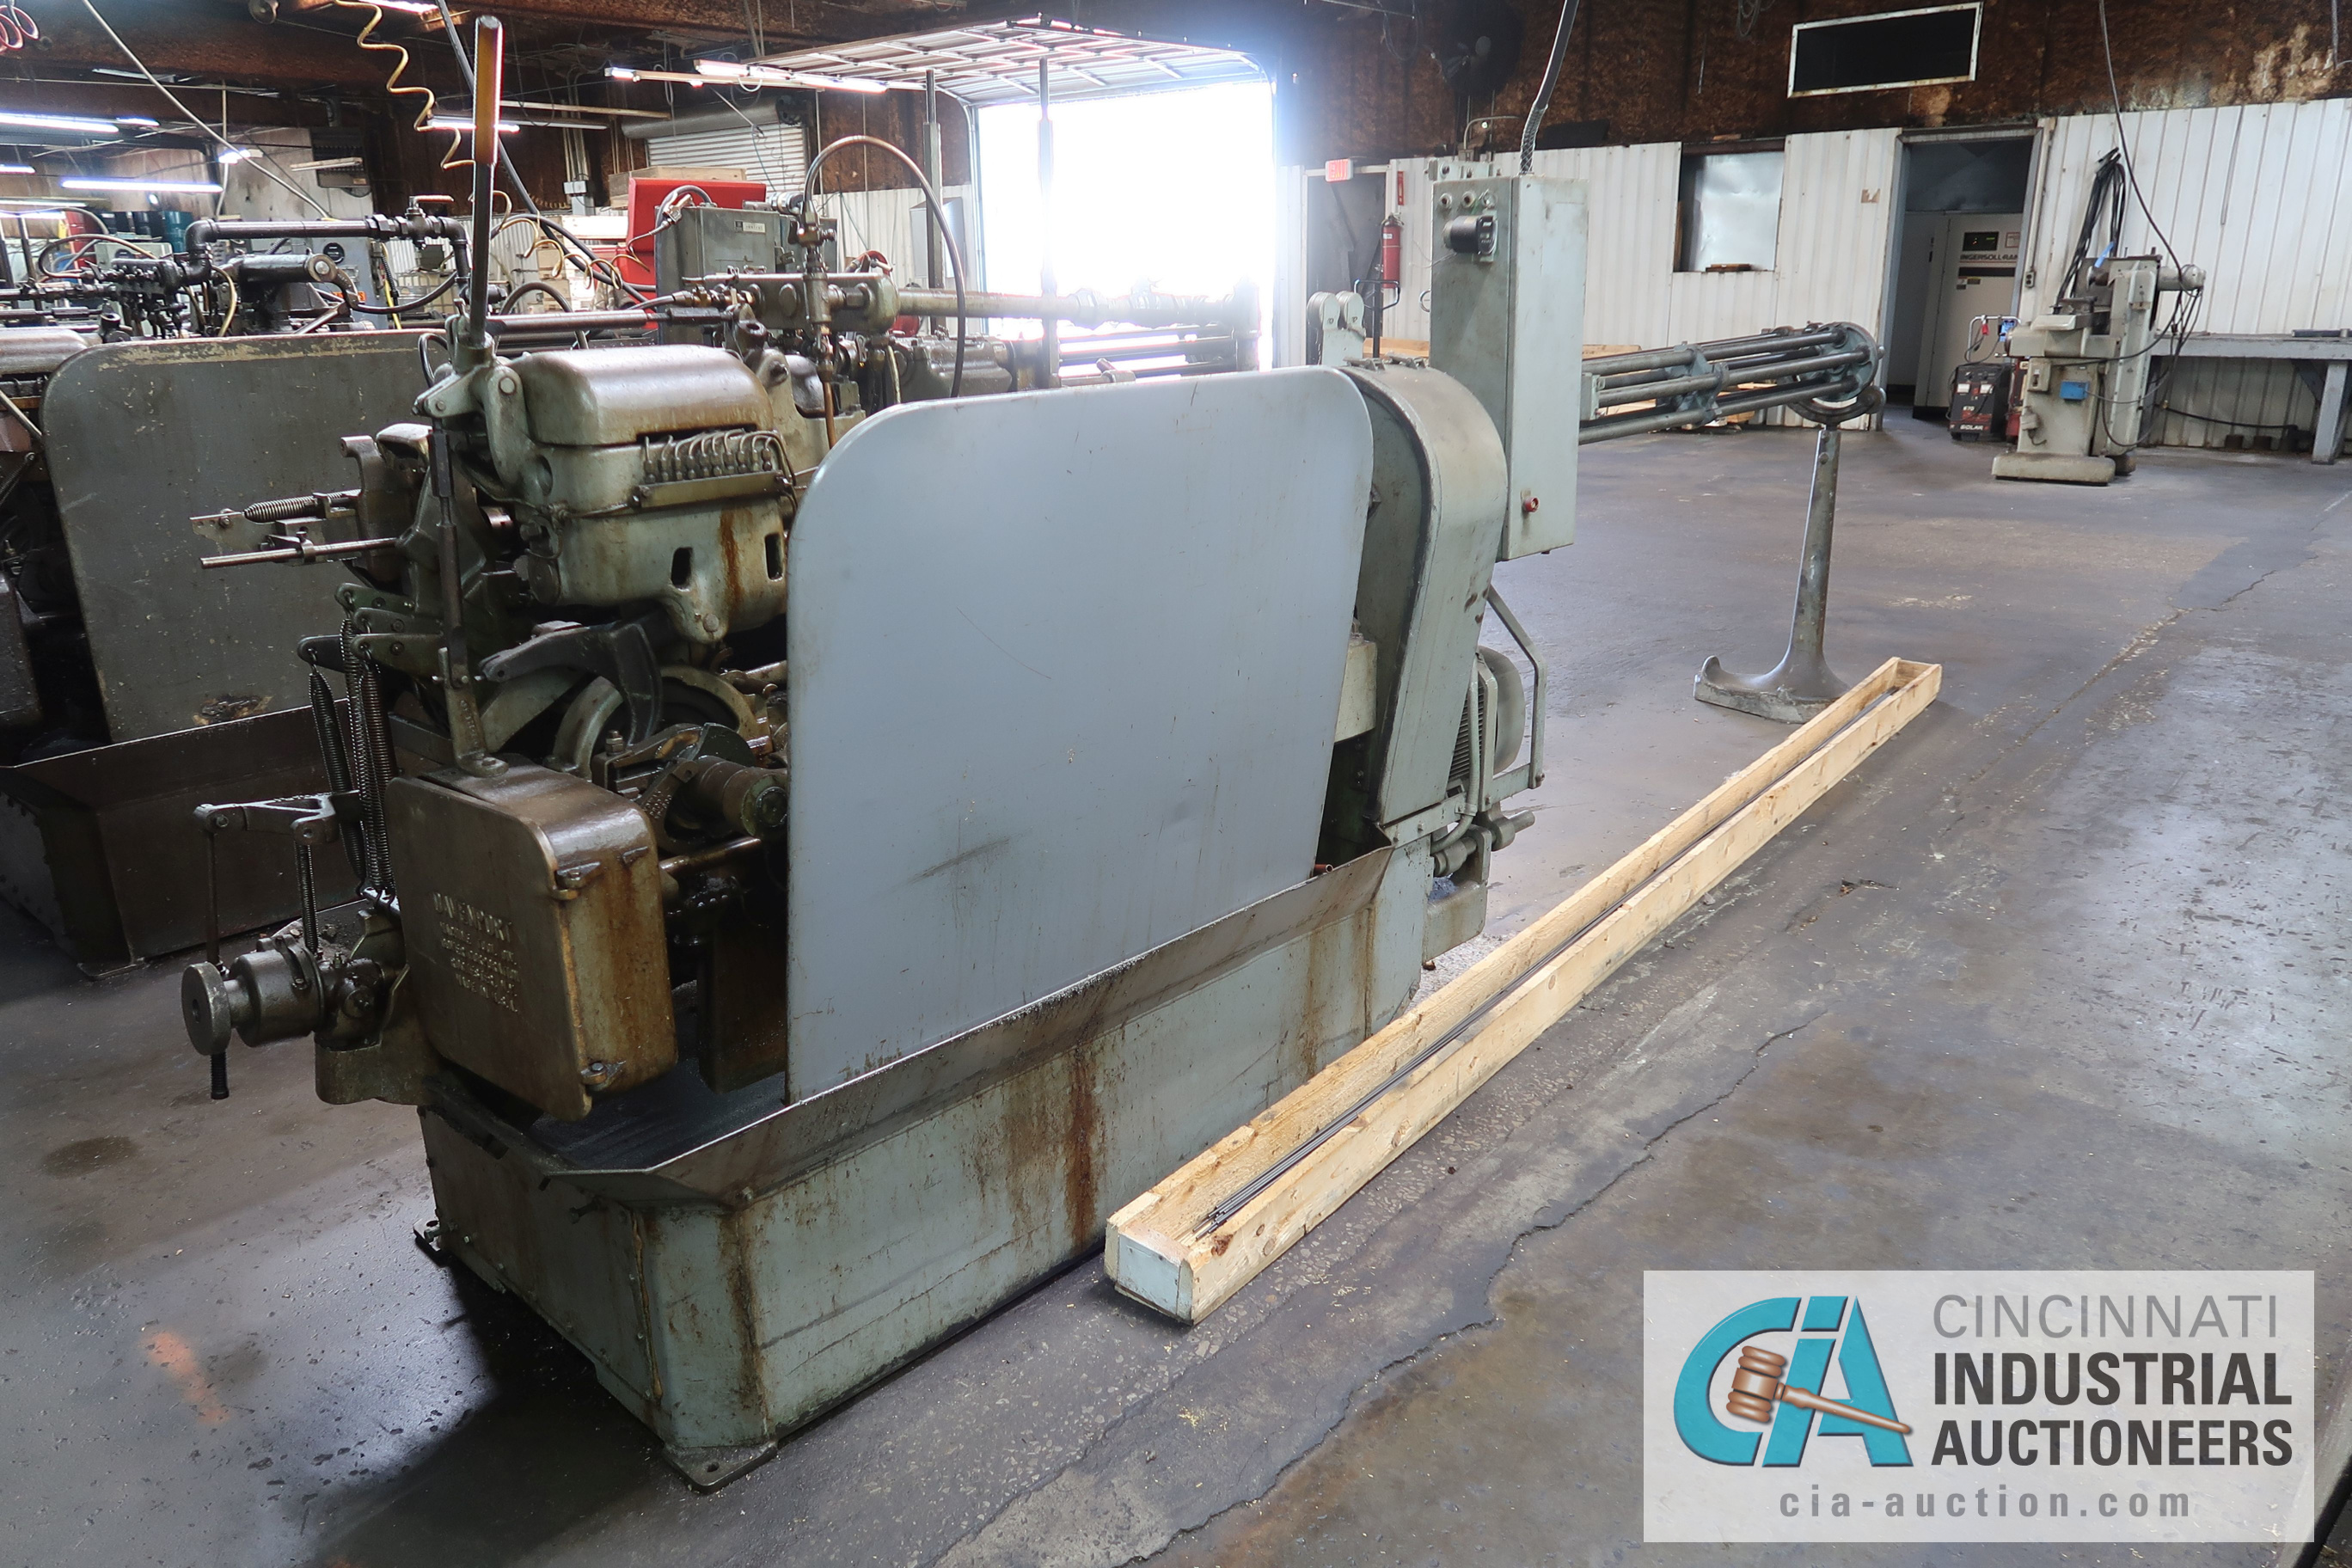 "Lot 5 - 3/4"" DAVENPORT 5-SPINDLE SCREW MACHINE; S/N 10441 (NEW 6-1980), WITH THREAD AND PICK OFF ATTACHMENT,"